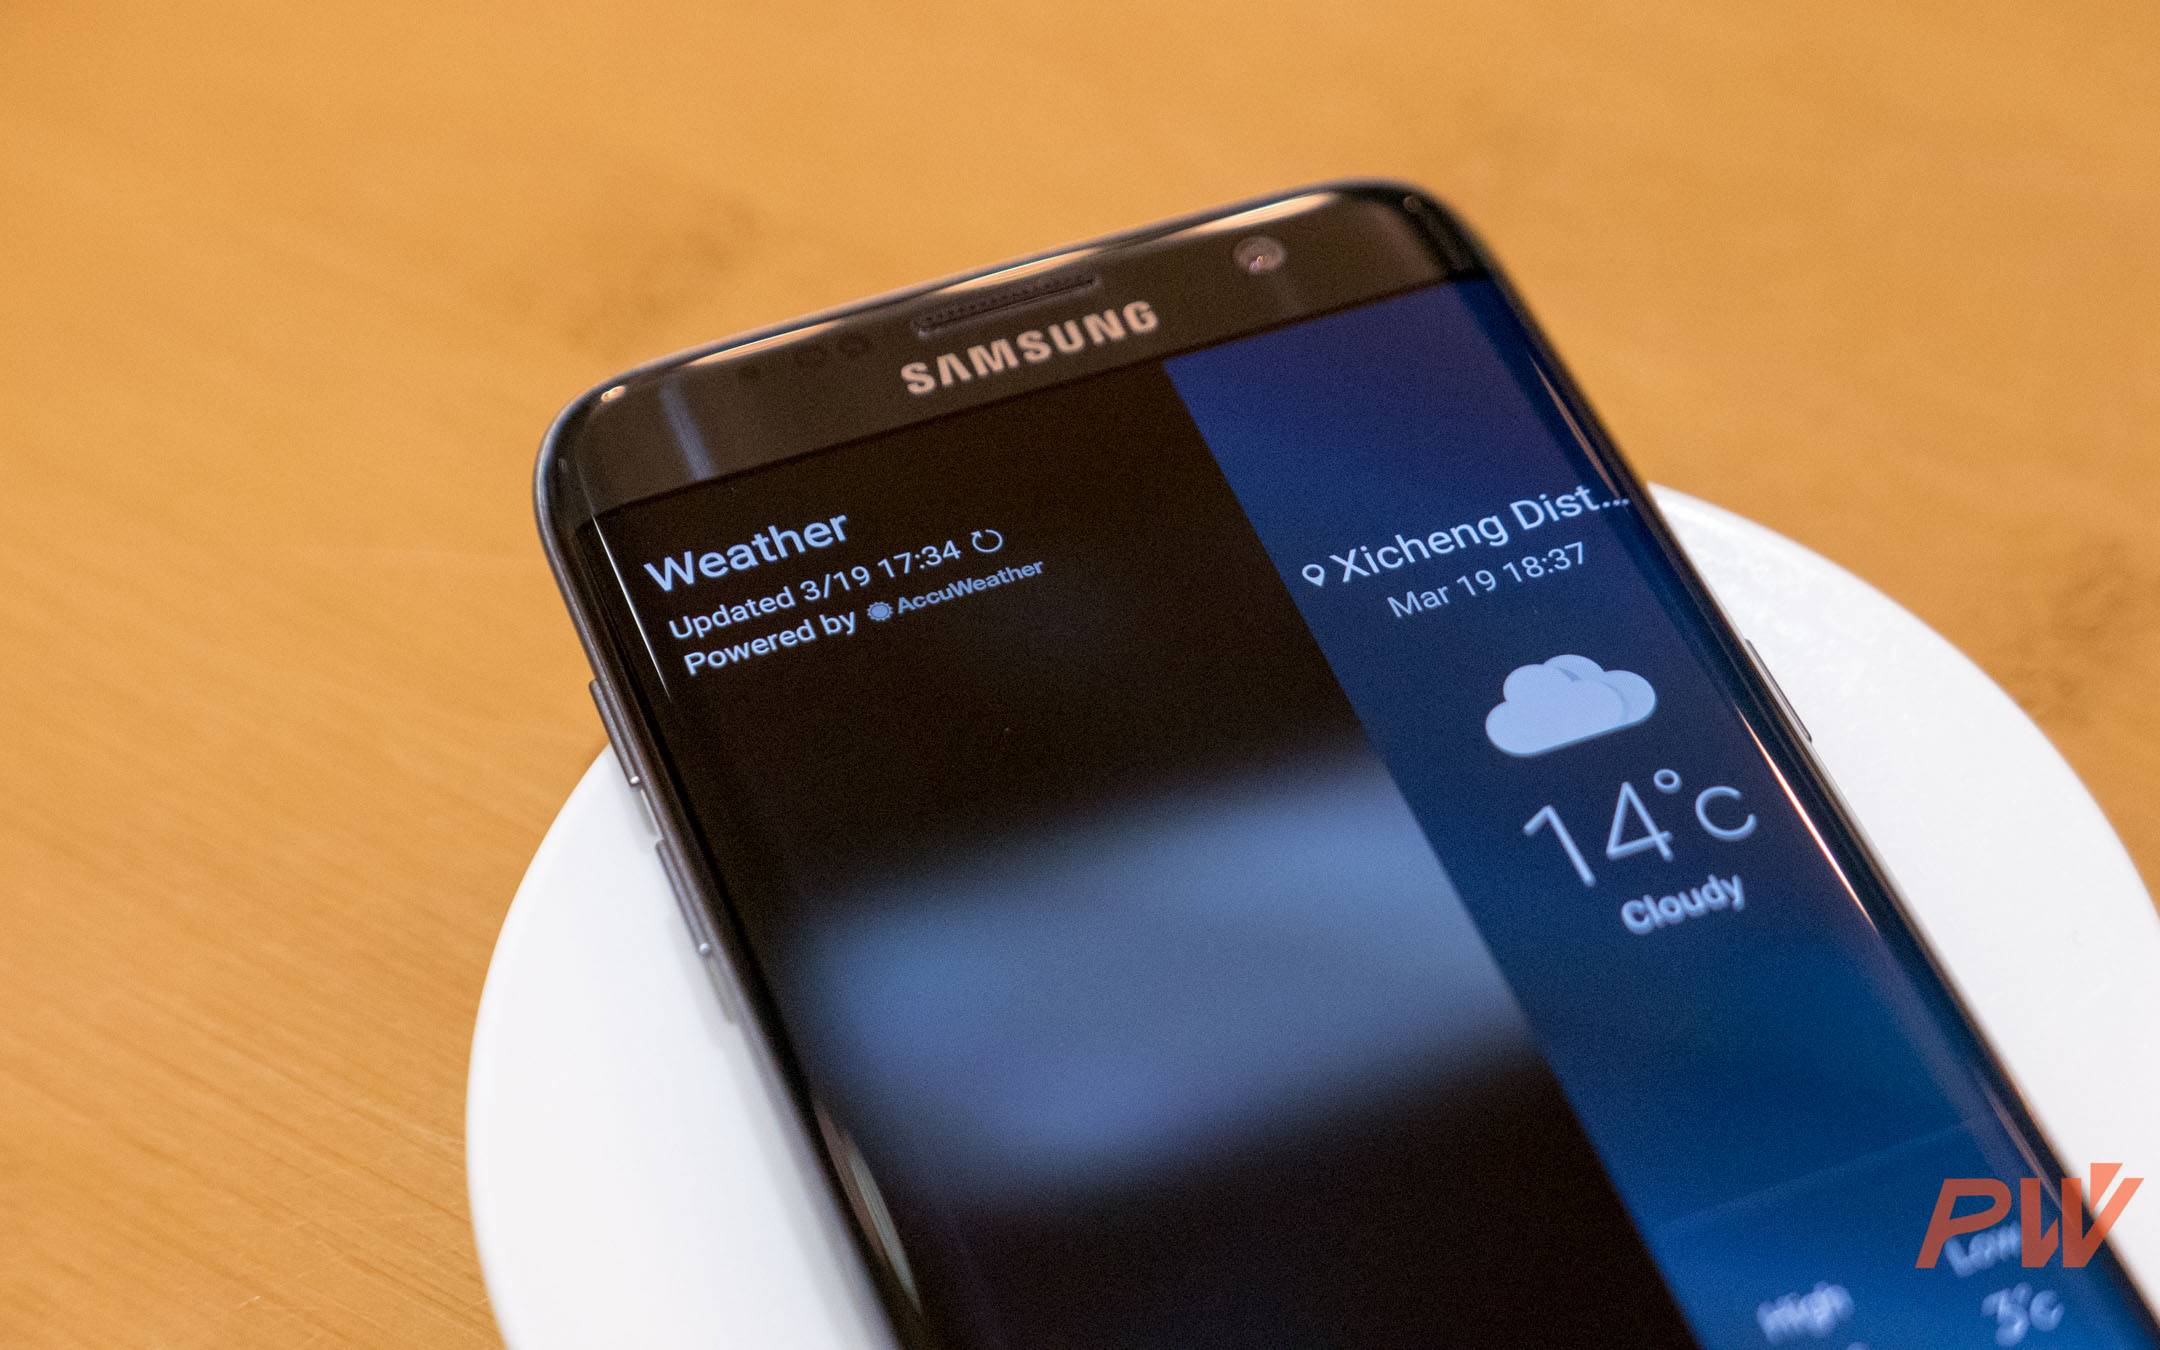 Samsung Galaxy S7 edge PingWest Photo By Hao Ying-32